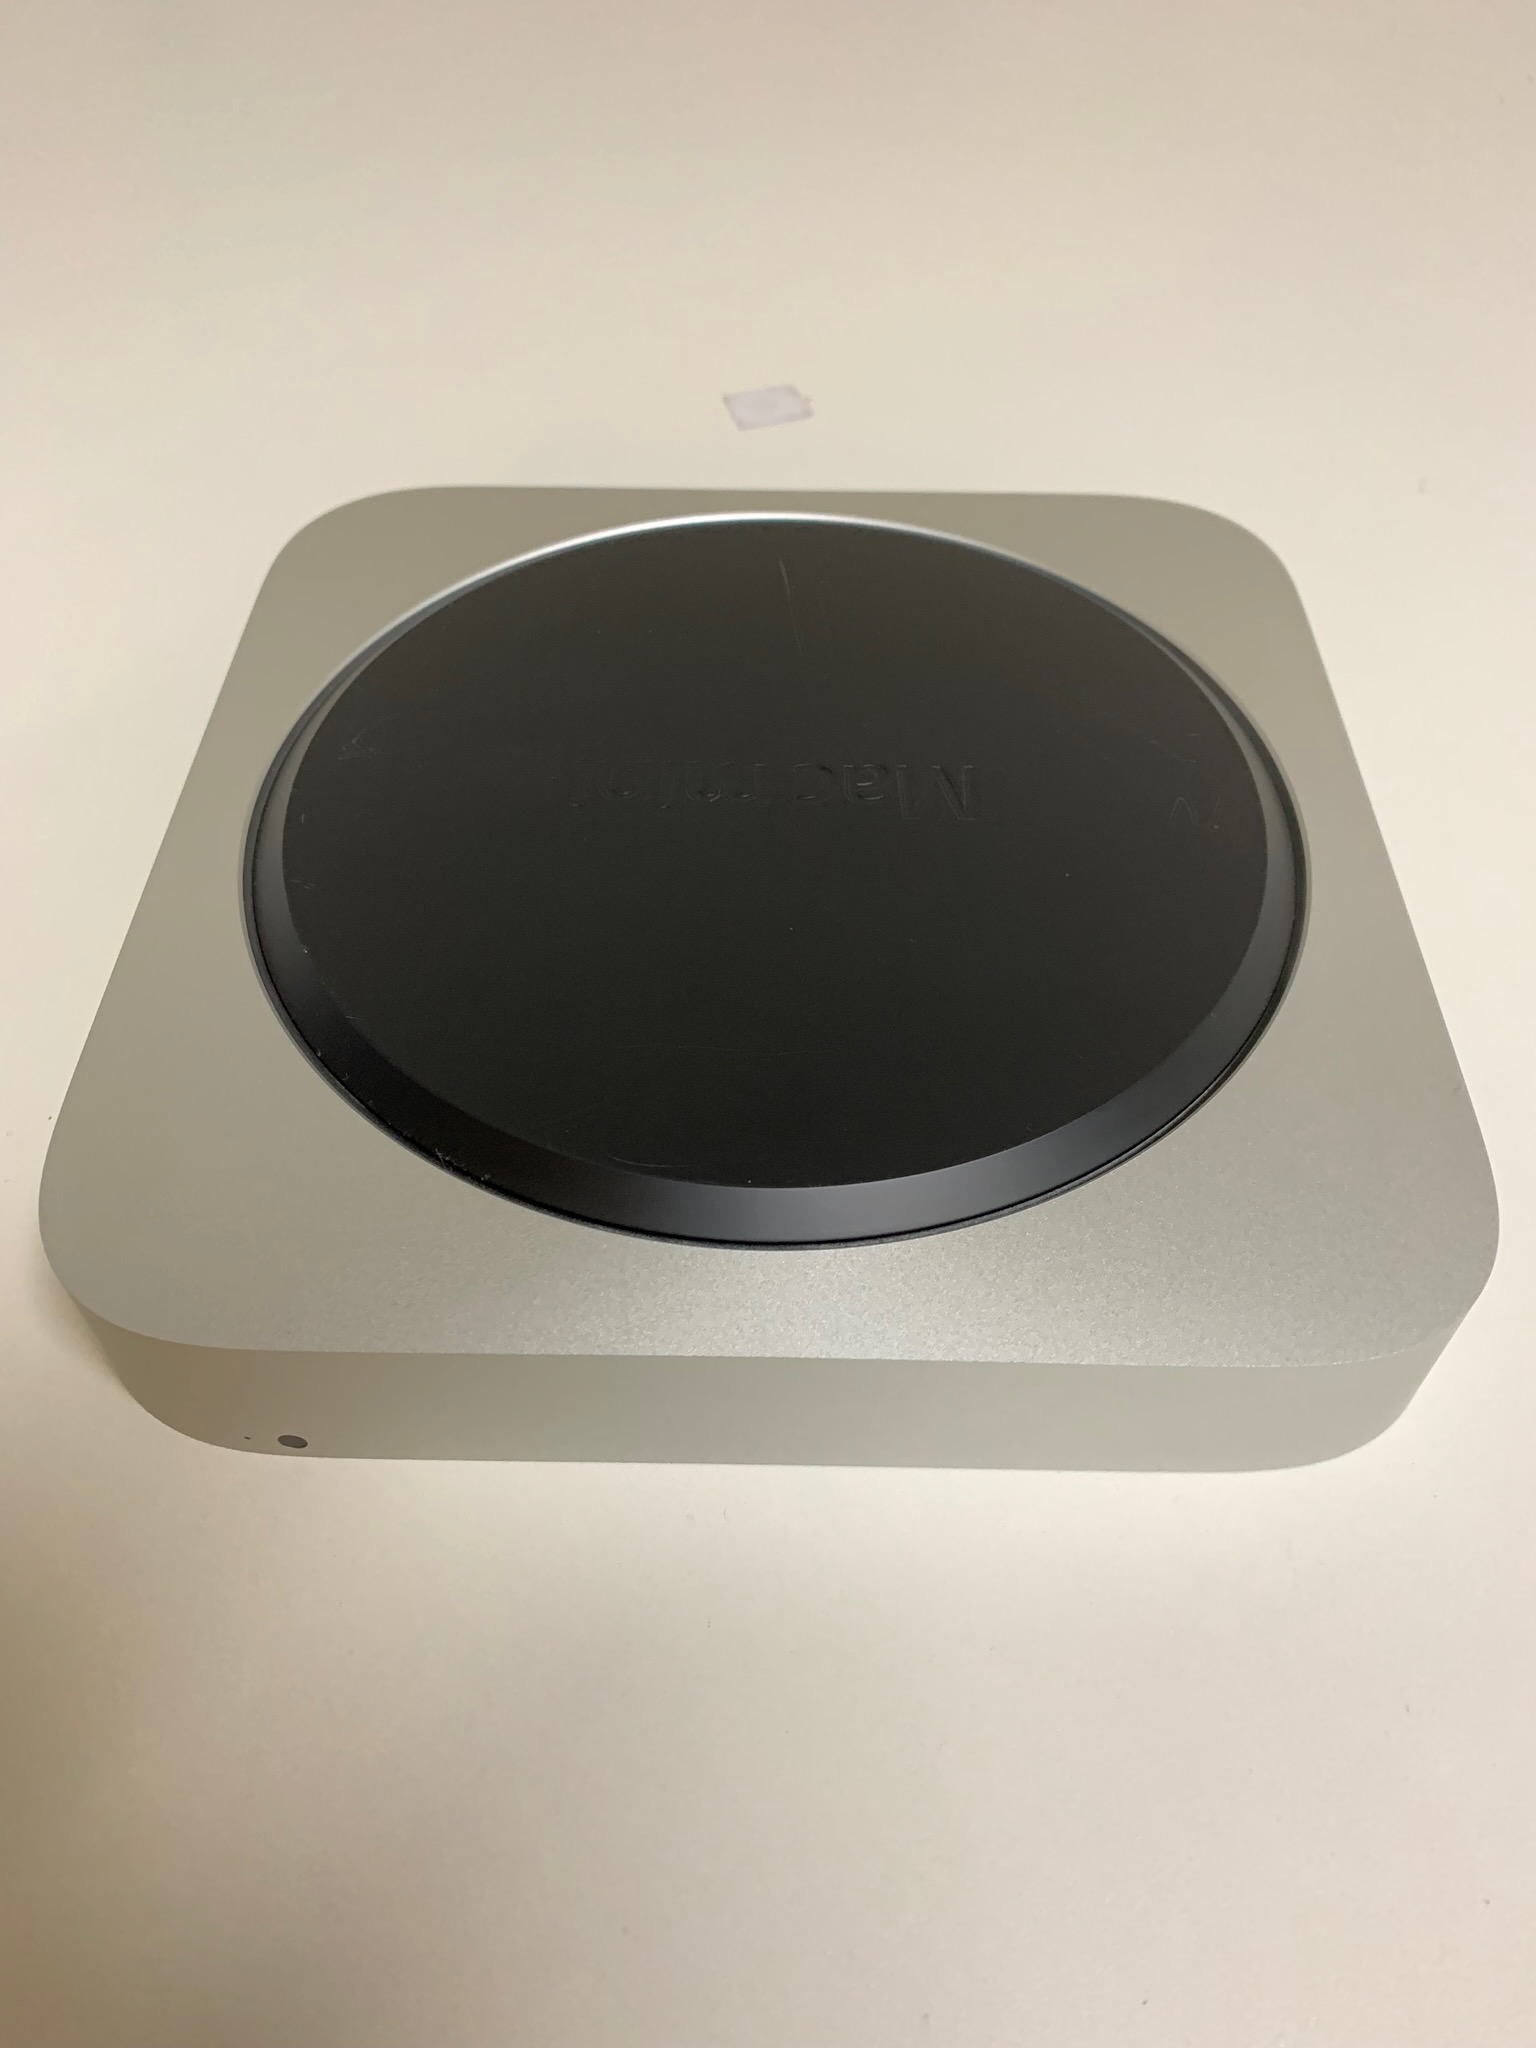 Mac Mini Late 2014 (Intel Core i5 2.8 GHz 16 GB RAM 512 GB SSD), 2.8 Intel Core i5, 16 GB , 500 GB SSD, Bild 3